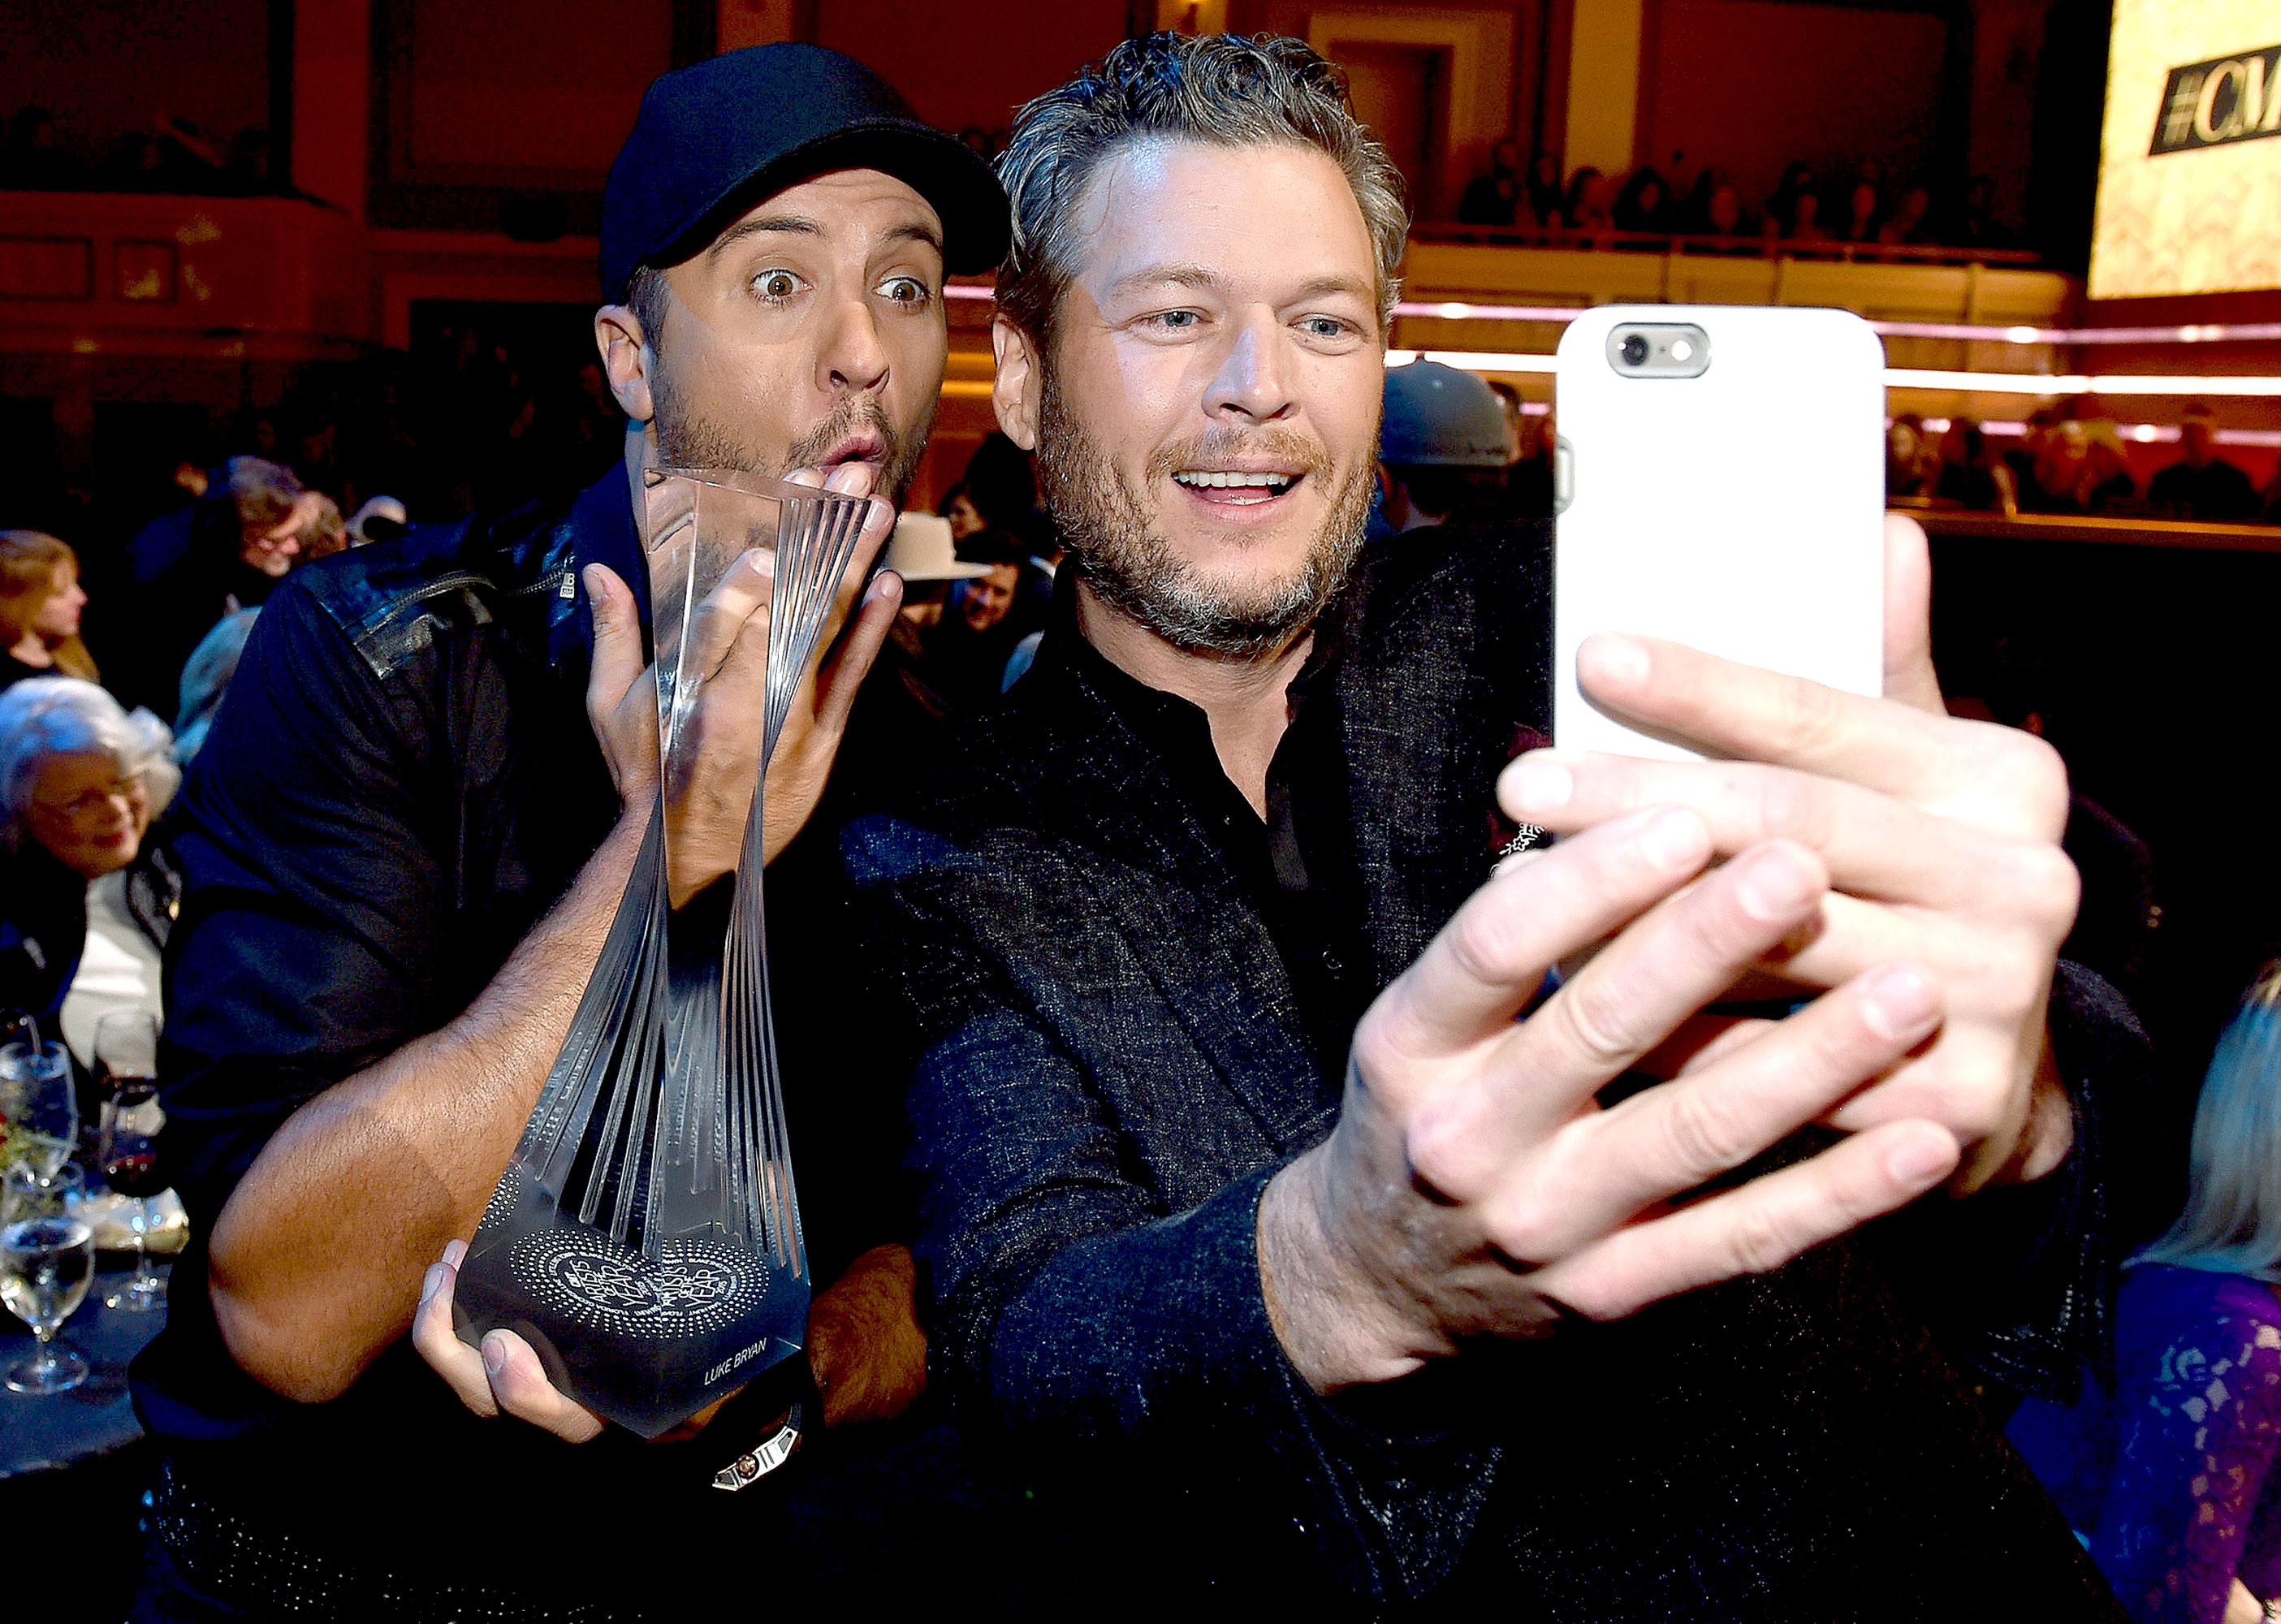 Luke bryan blake shelton doesnt want me to meet gwen stefani luke bryan and blake shelton attend the 2015 cmt artists of the year at schermerhorn symphony center on december 2 2015 in nashville tennessee m4hsunfo